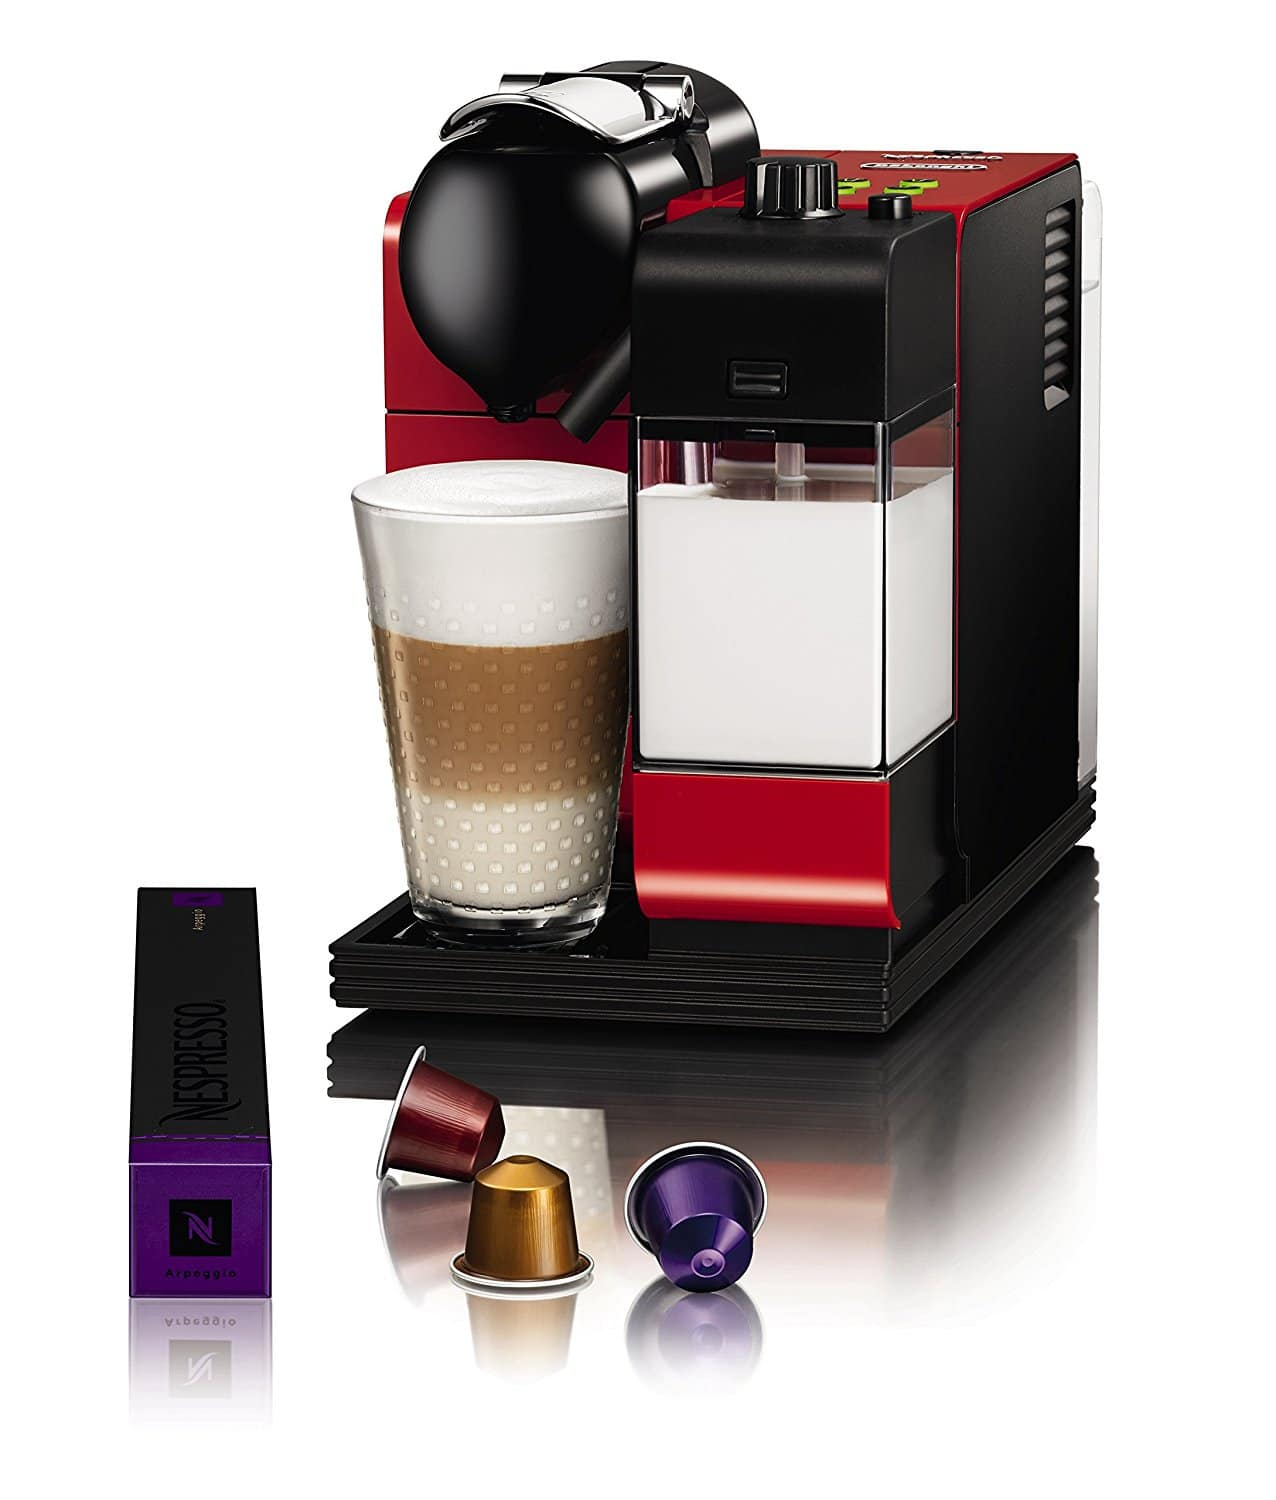 delonghi lattissima cafeti re nespresso test et avis. Black Bedroom Furniture Sets. Home Design Ideas